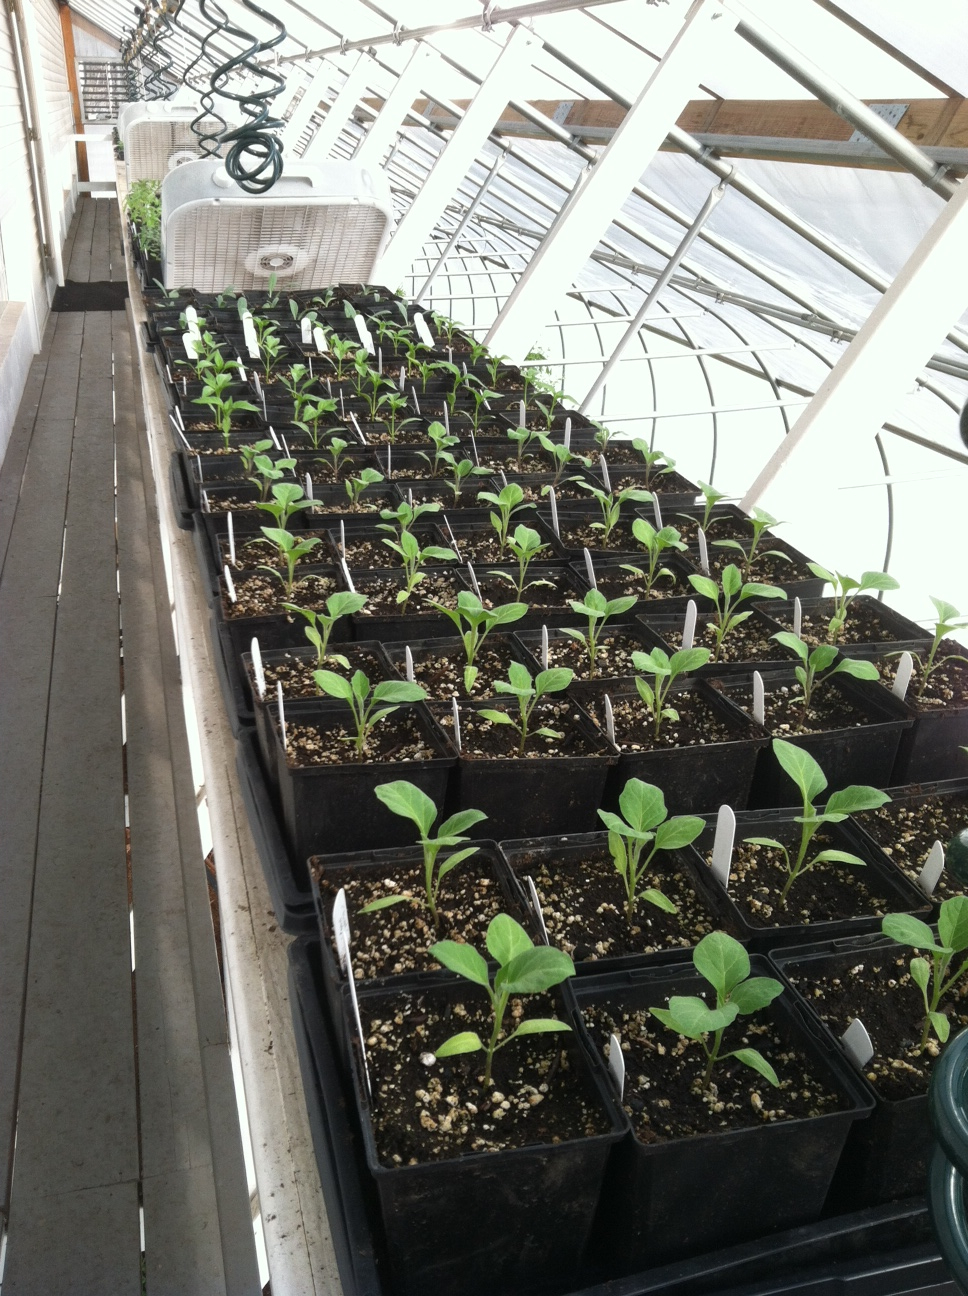 Eggplant seedlings.